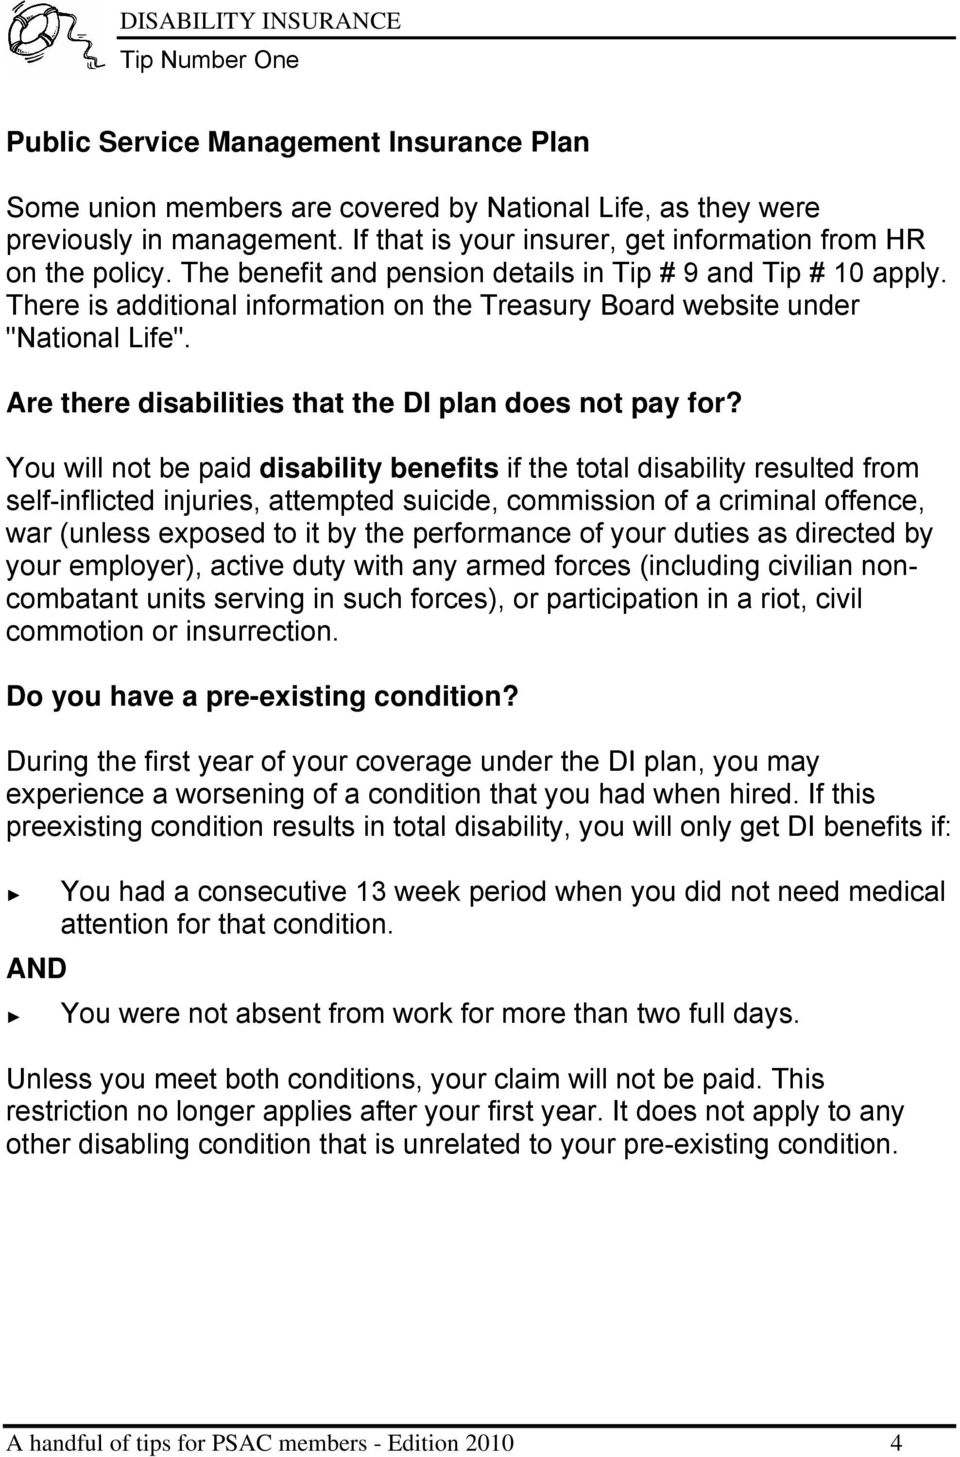 "There is additional information on the Treasury Board website under ""National Life"". Are there disabilities that the DI plan does not pay for?"